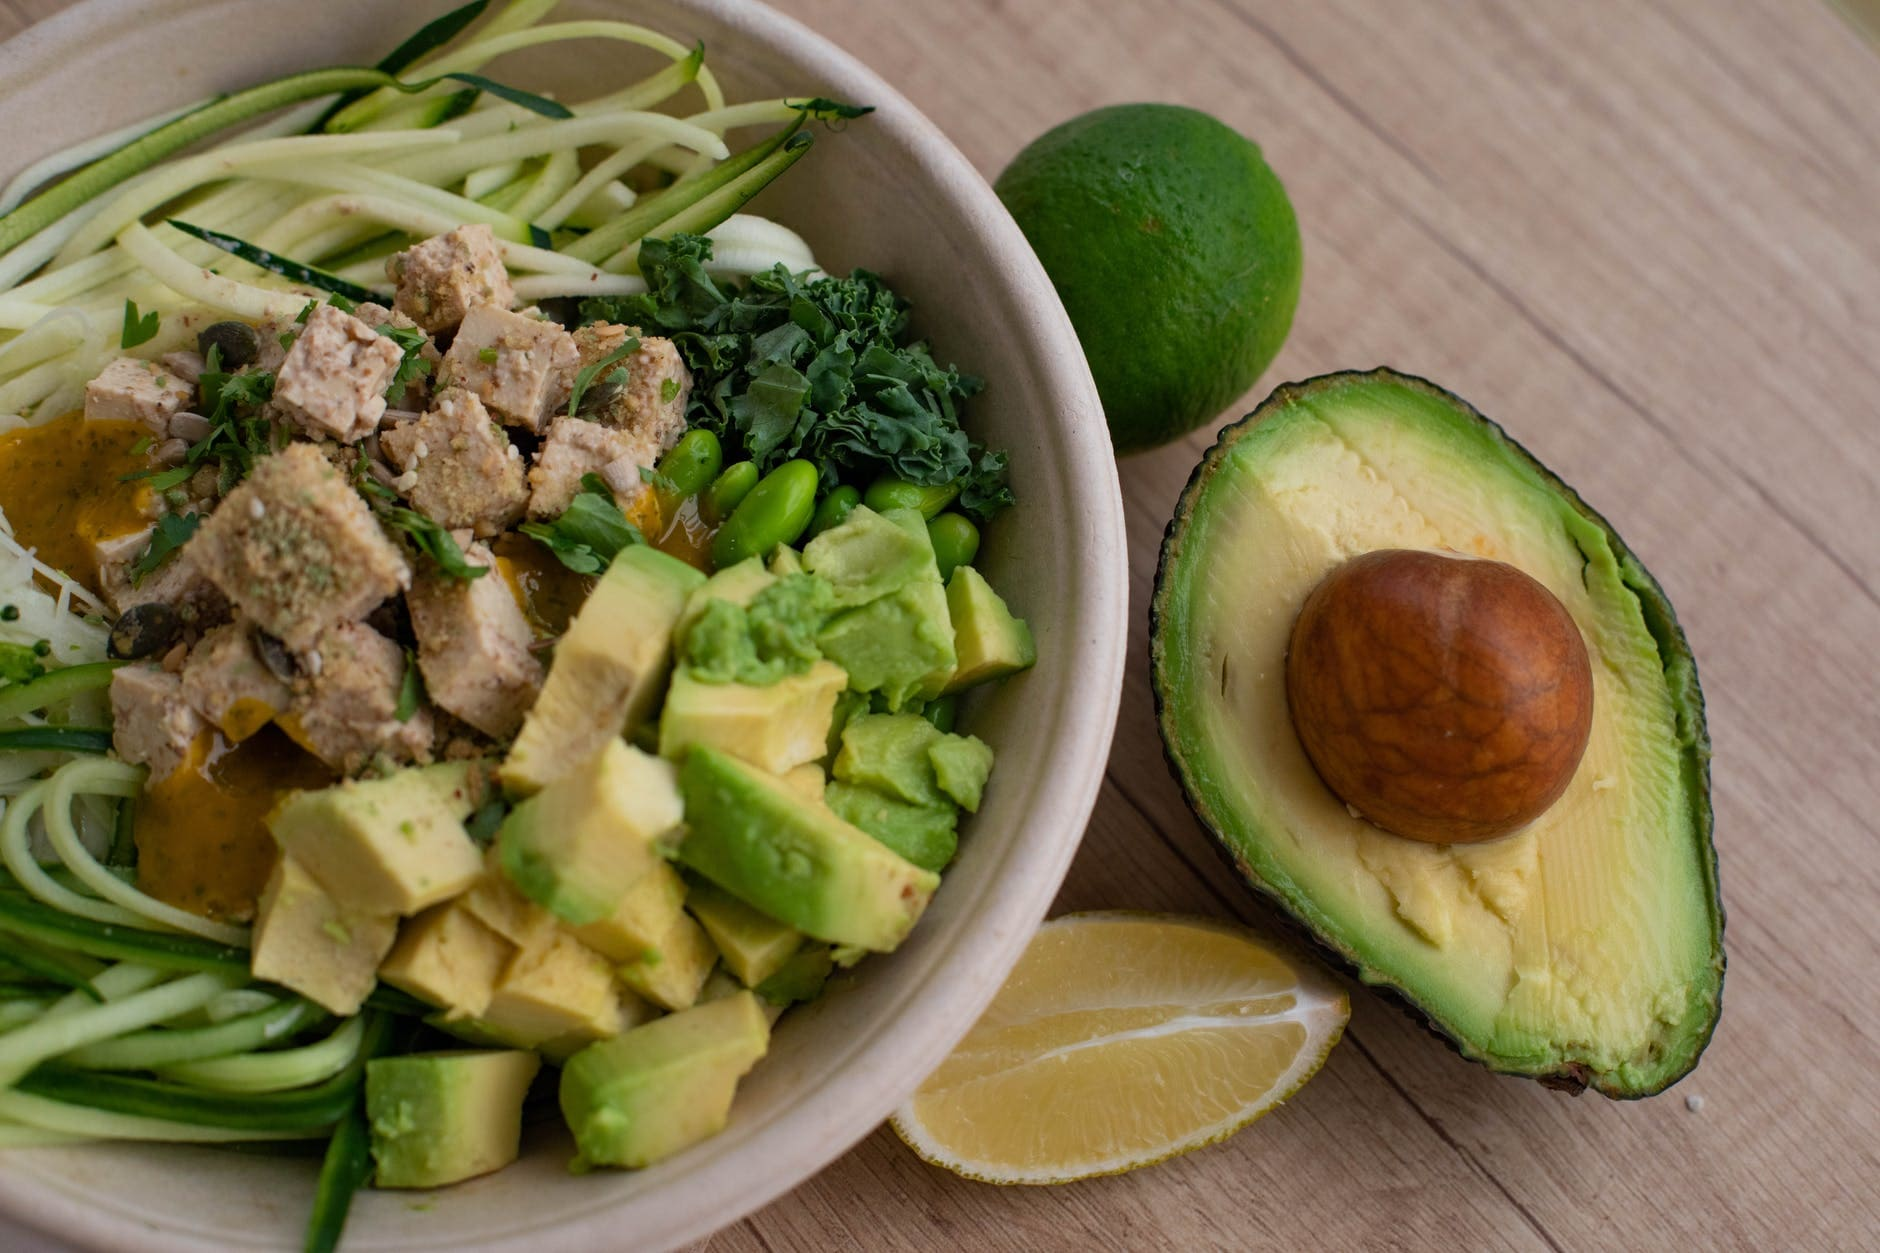 How to make avocado salad for diet